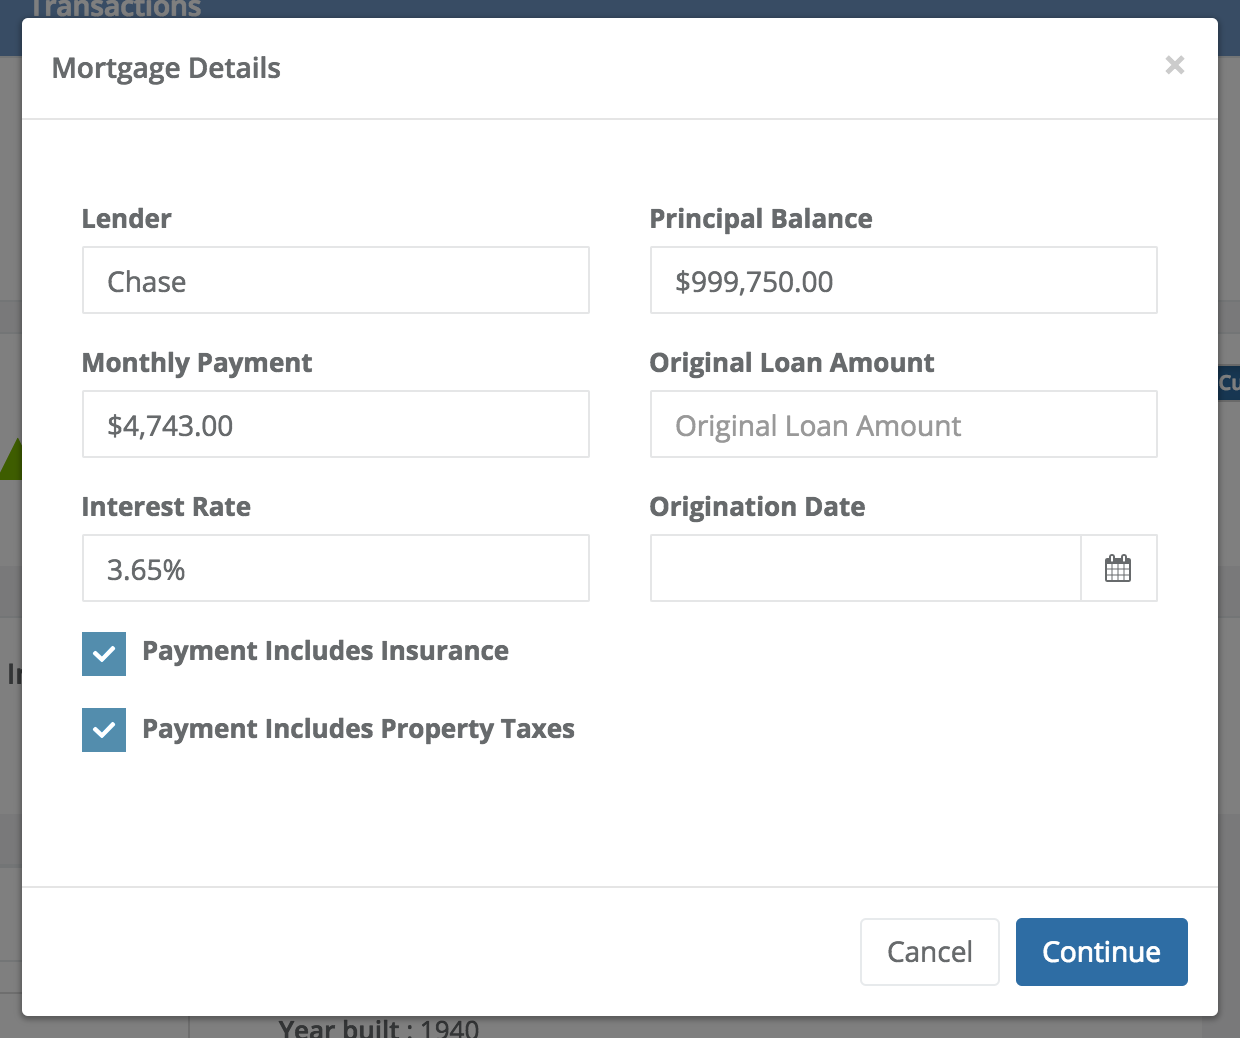 View mortgage details including principal balance, interest rate, and monthly payment